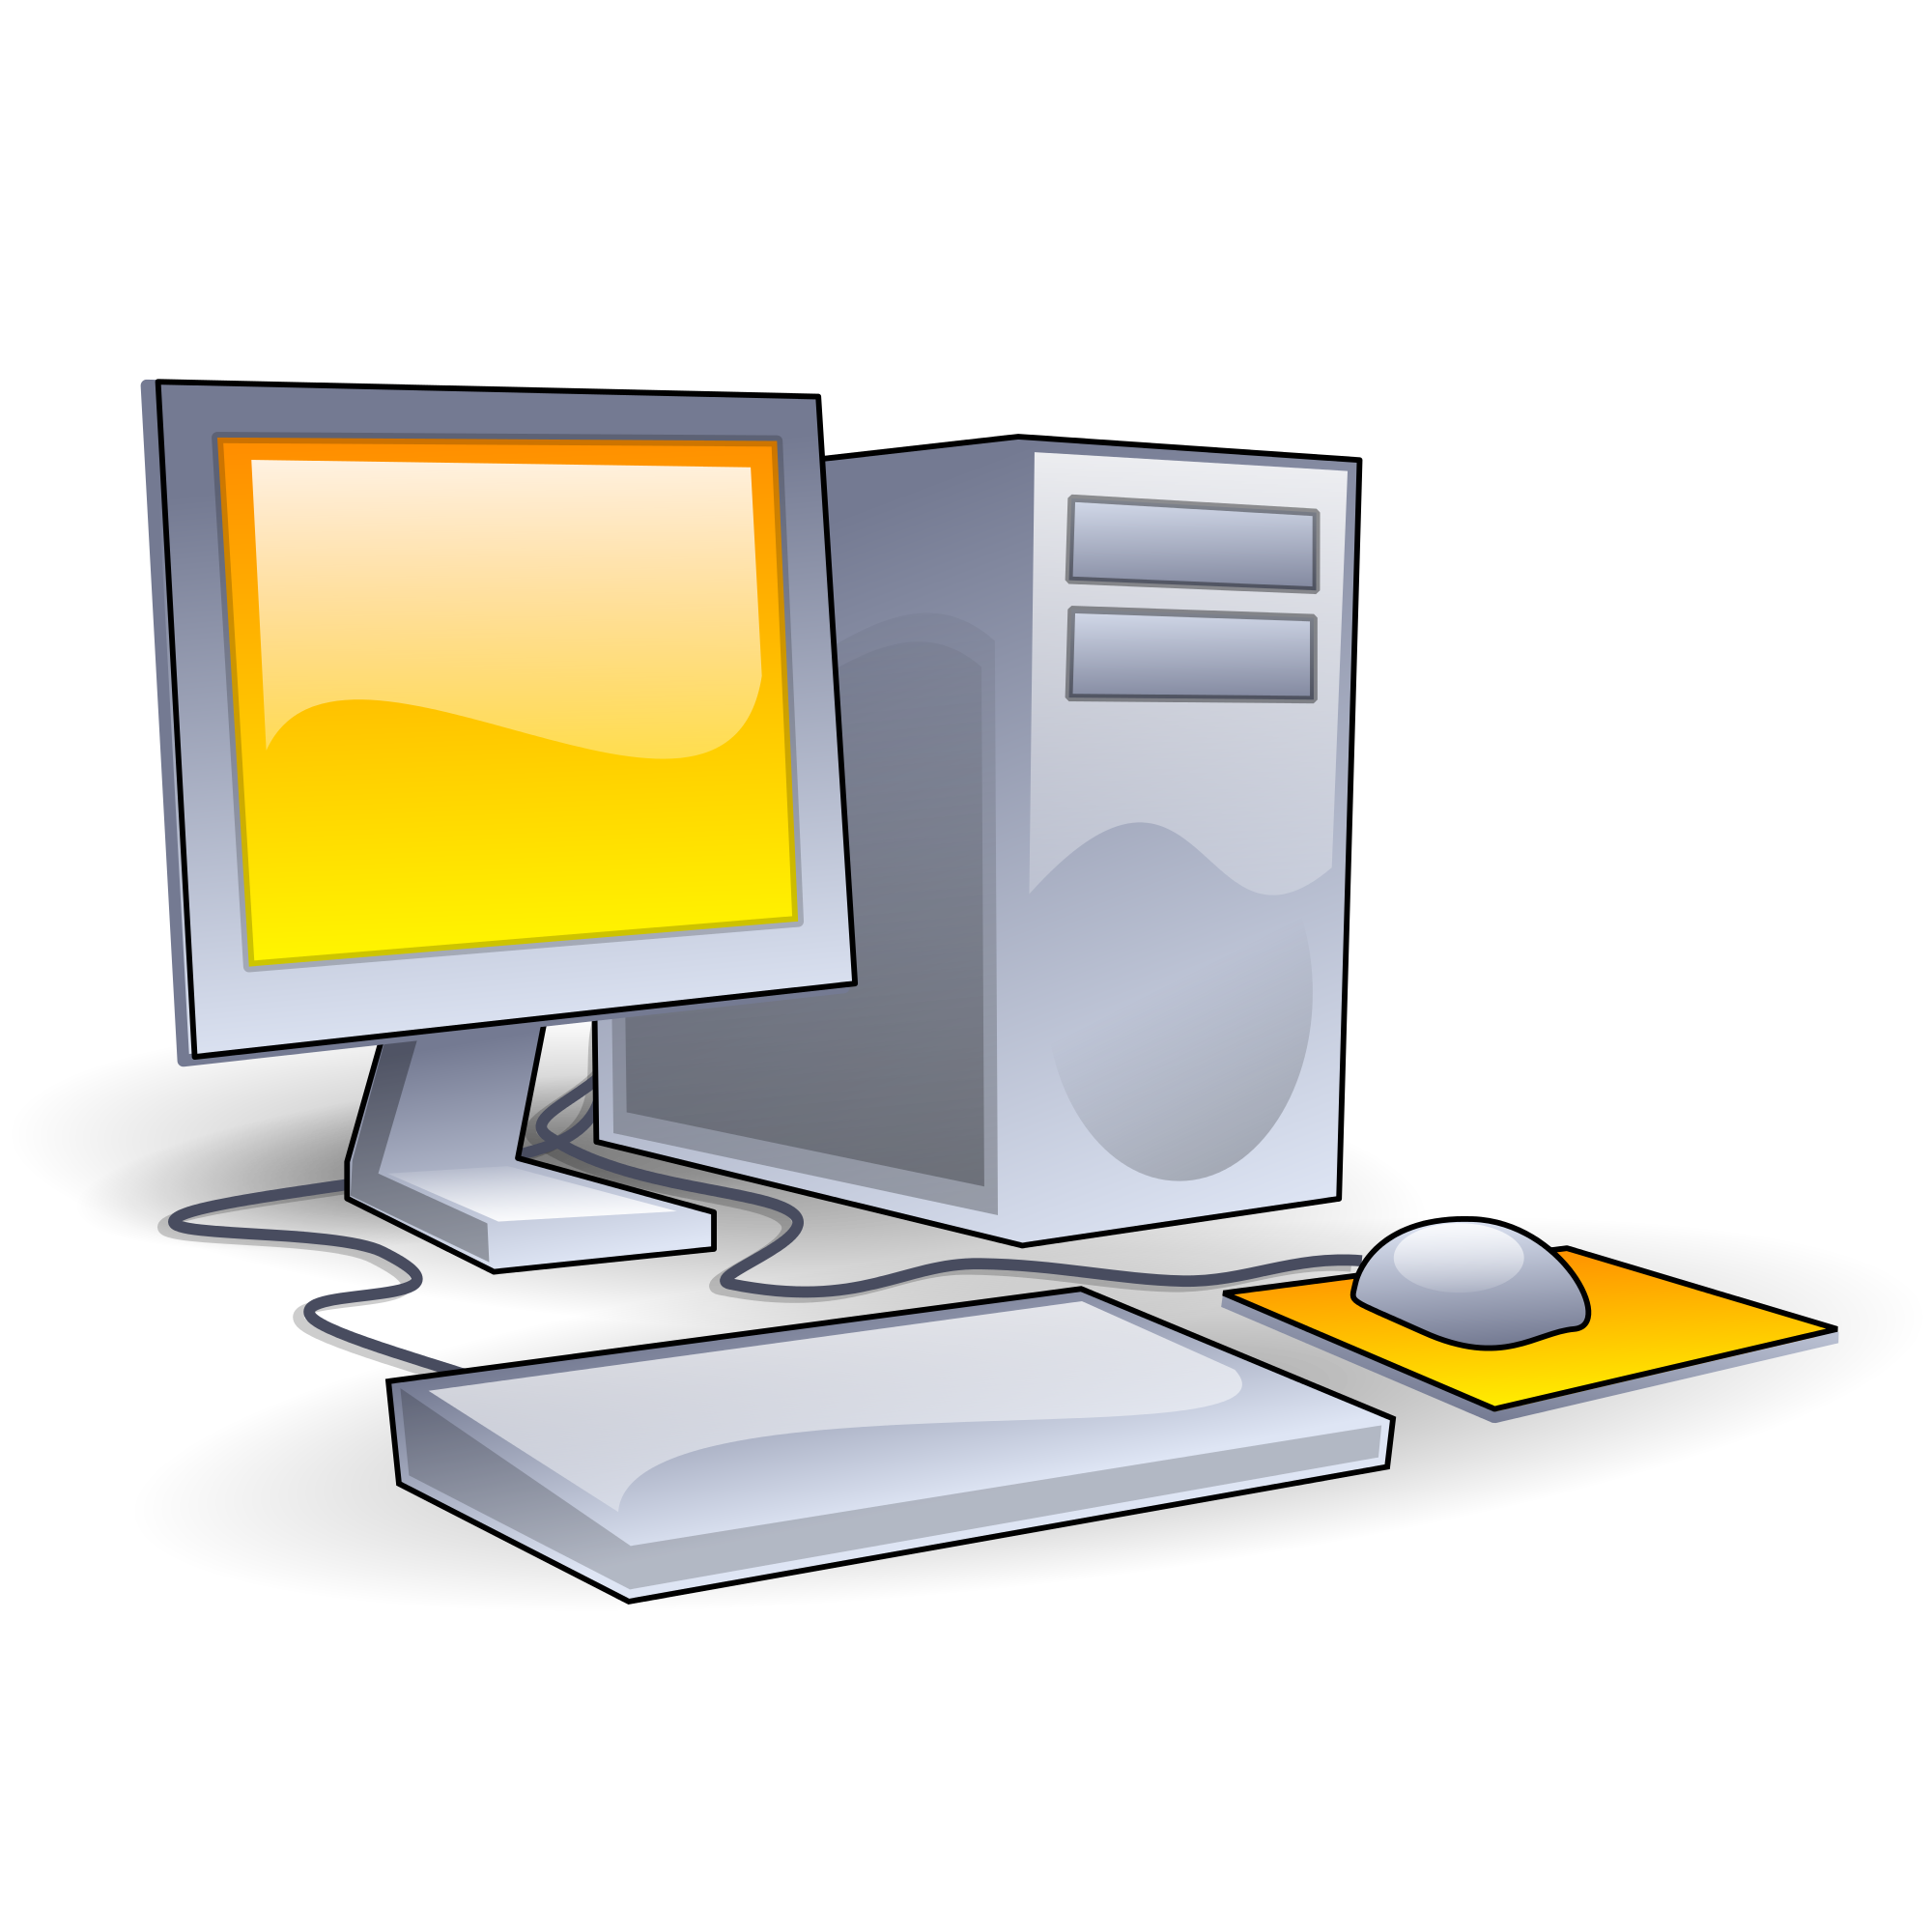 Are computers really that. Information clipart computer technology